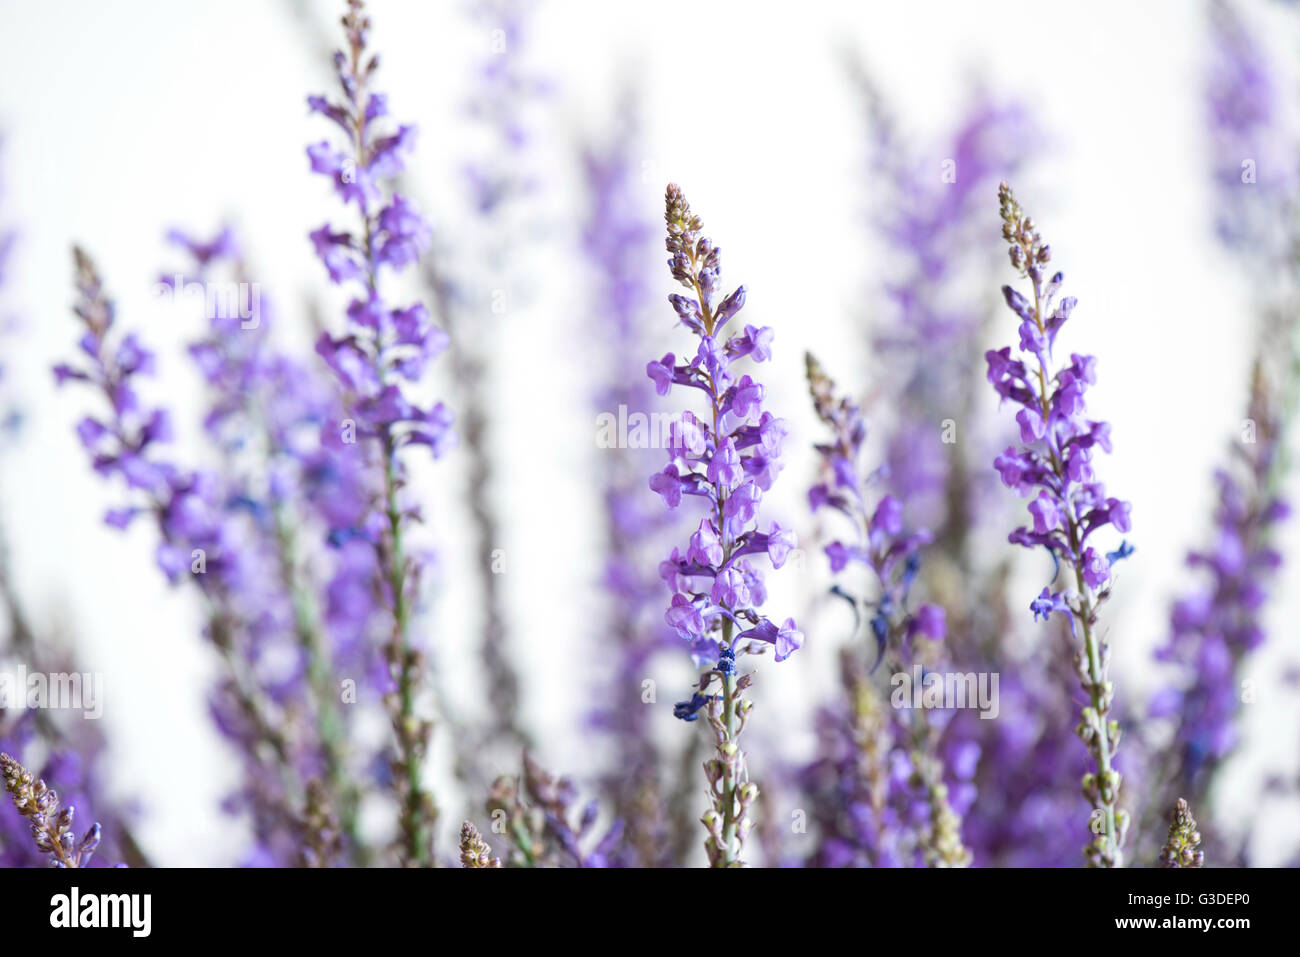 Spontaneous grass with purple flowers - Stock Image